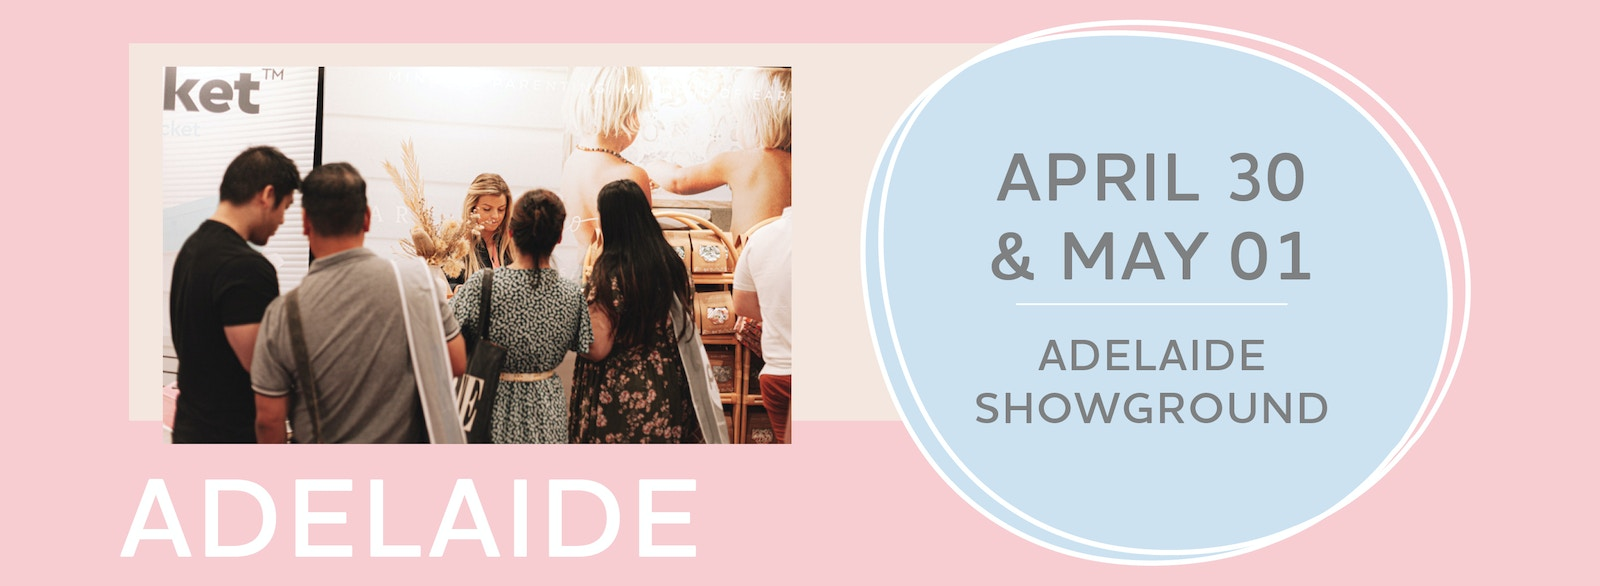 Image of a couple at the expo with a text box that reads Adelaide April 30 and May 01, Adelaide showground